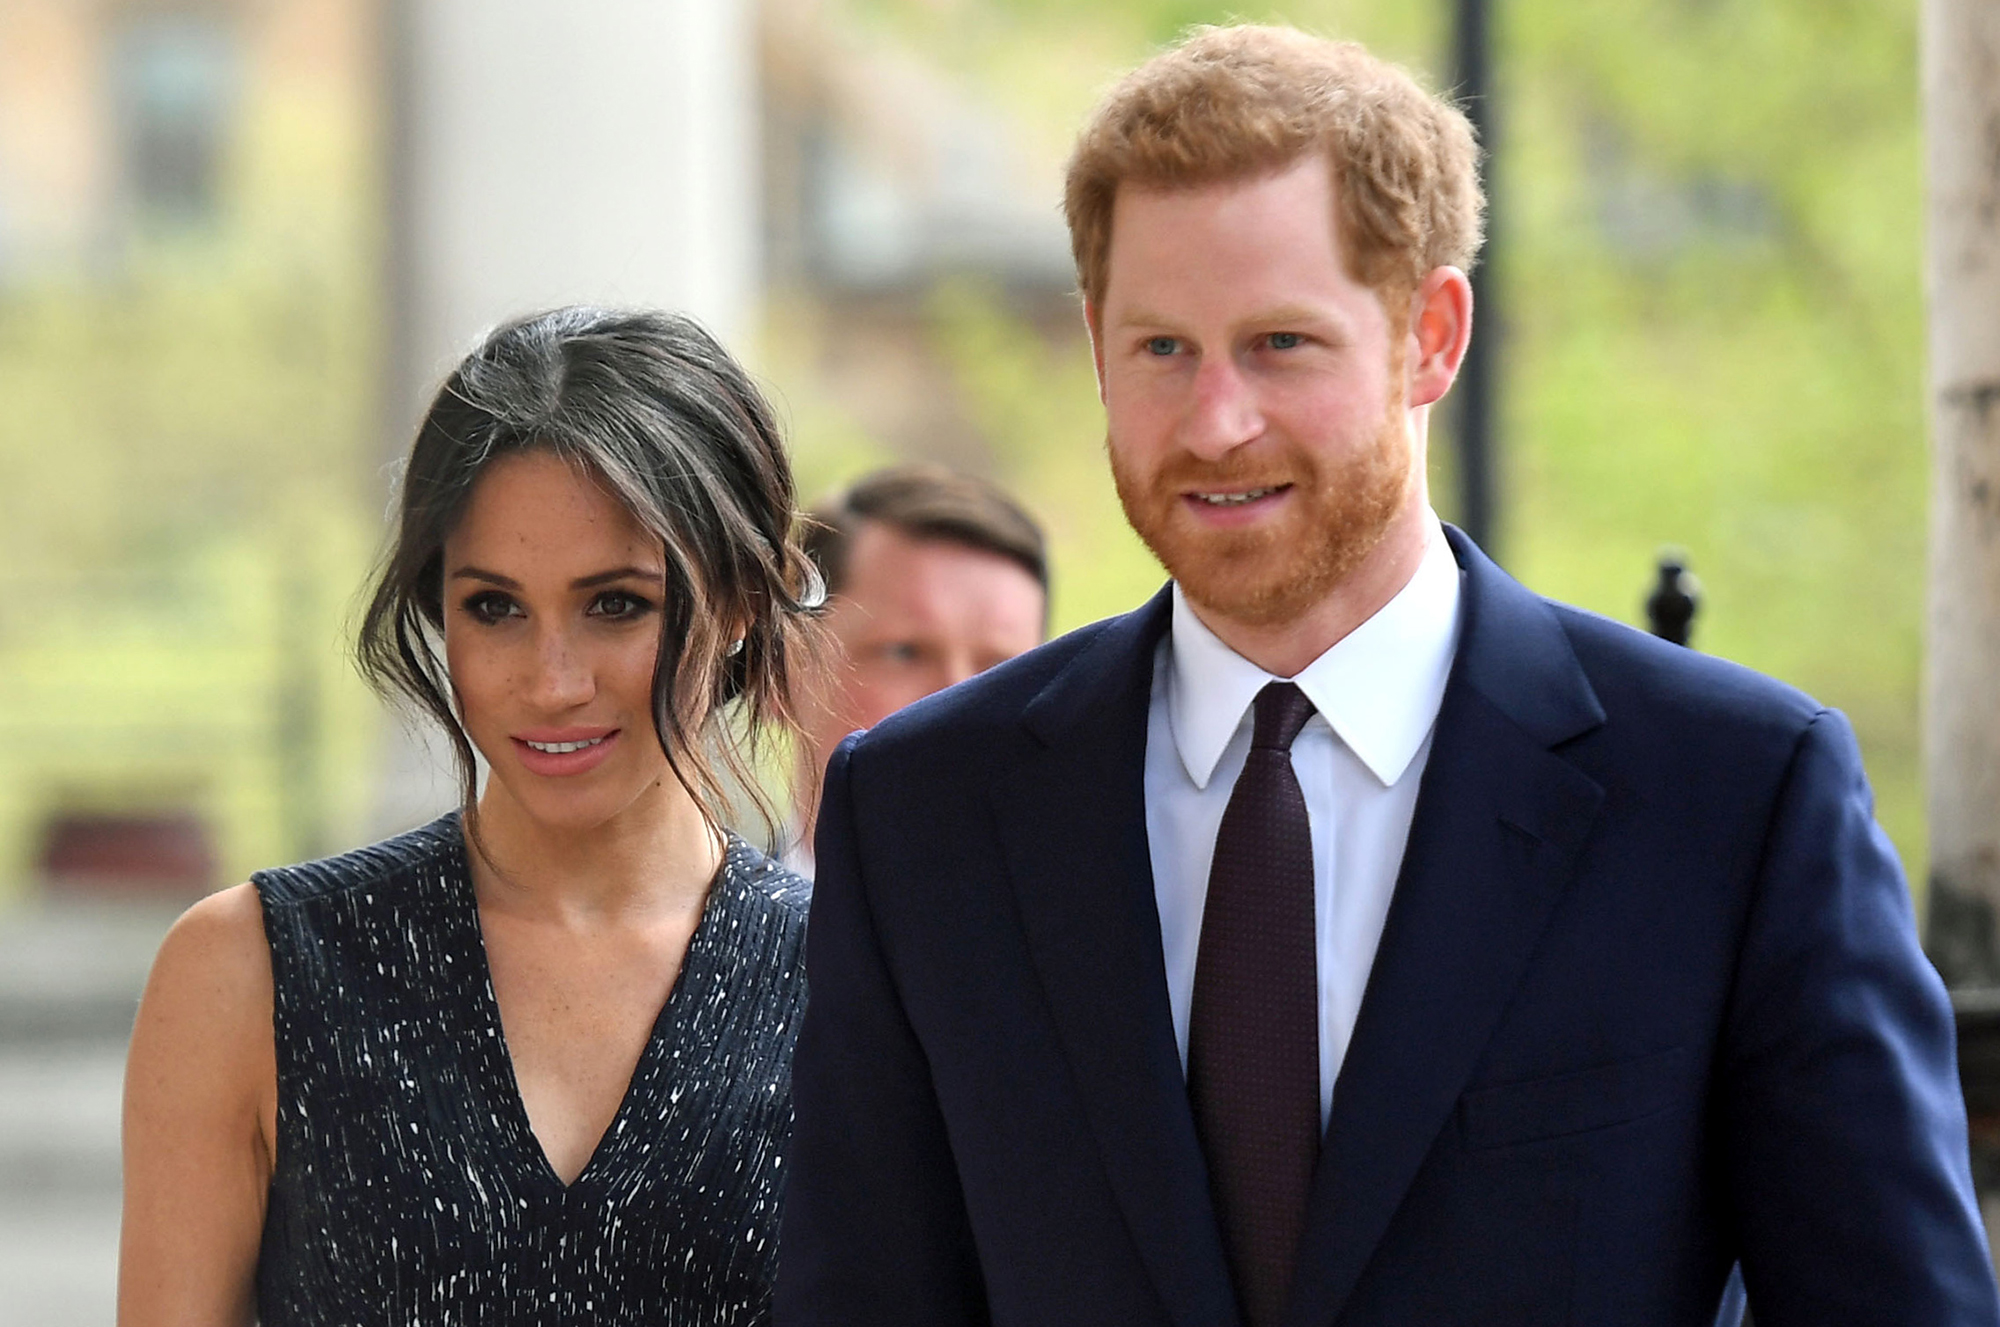 """Prince Harry and Duchess Meghan's 1st Year of Marriage - The palace confirmed in November 2018 that the parents-to-be were moving from their current residence at Nottingham Cottage in London to Frogmore Cottage in Windsor, England. """"There are 10 bedrooms, and the cottage does need some updating and renovations,"""" an insider told Us at the time about their new home."""